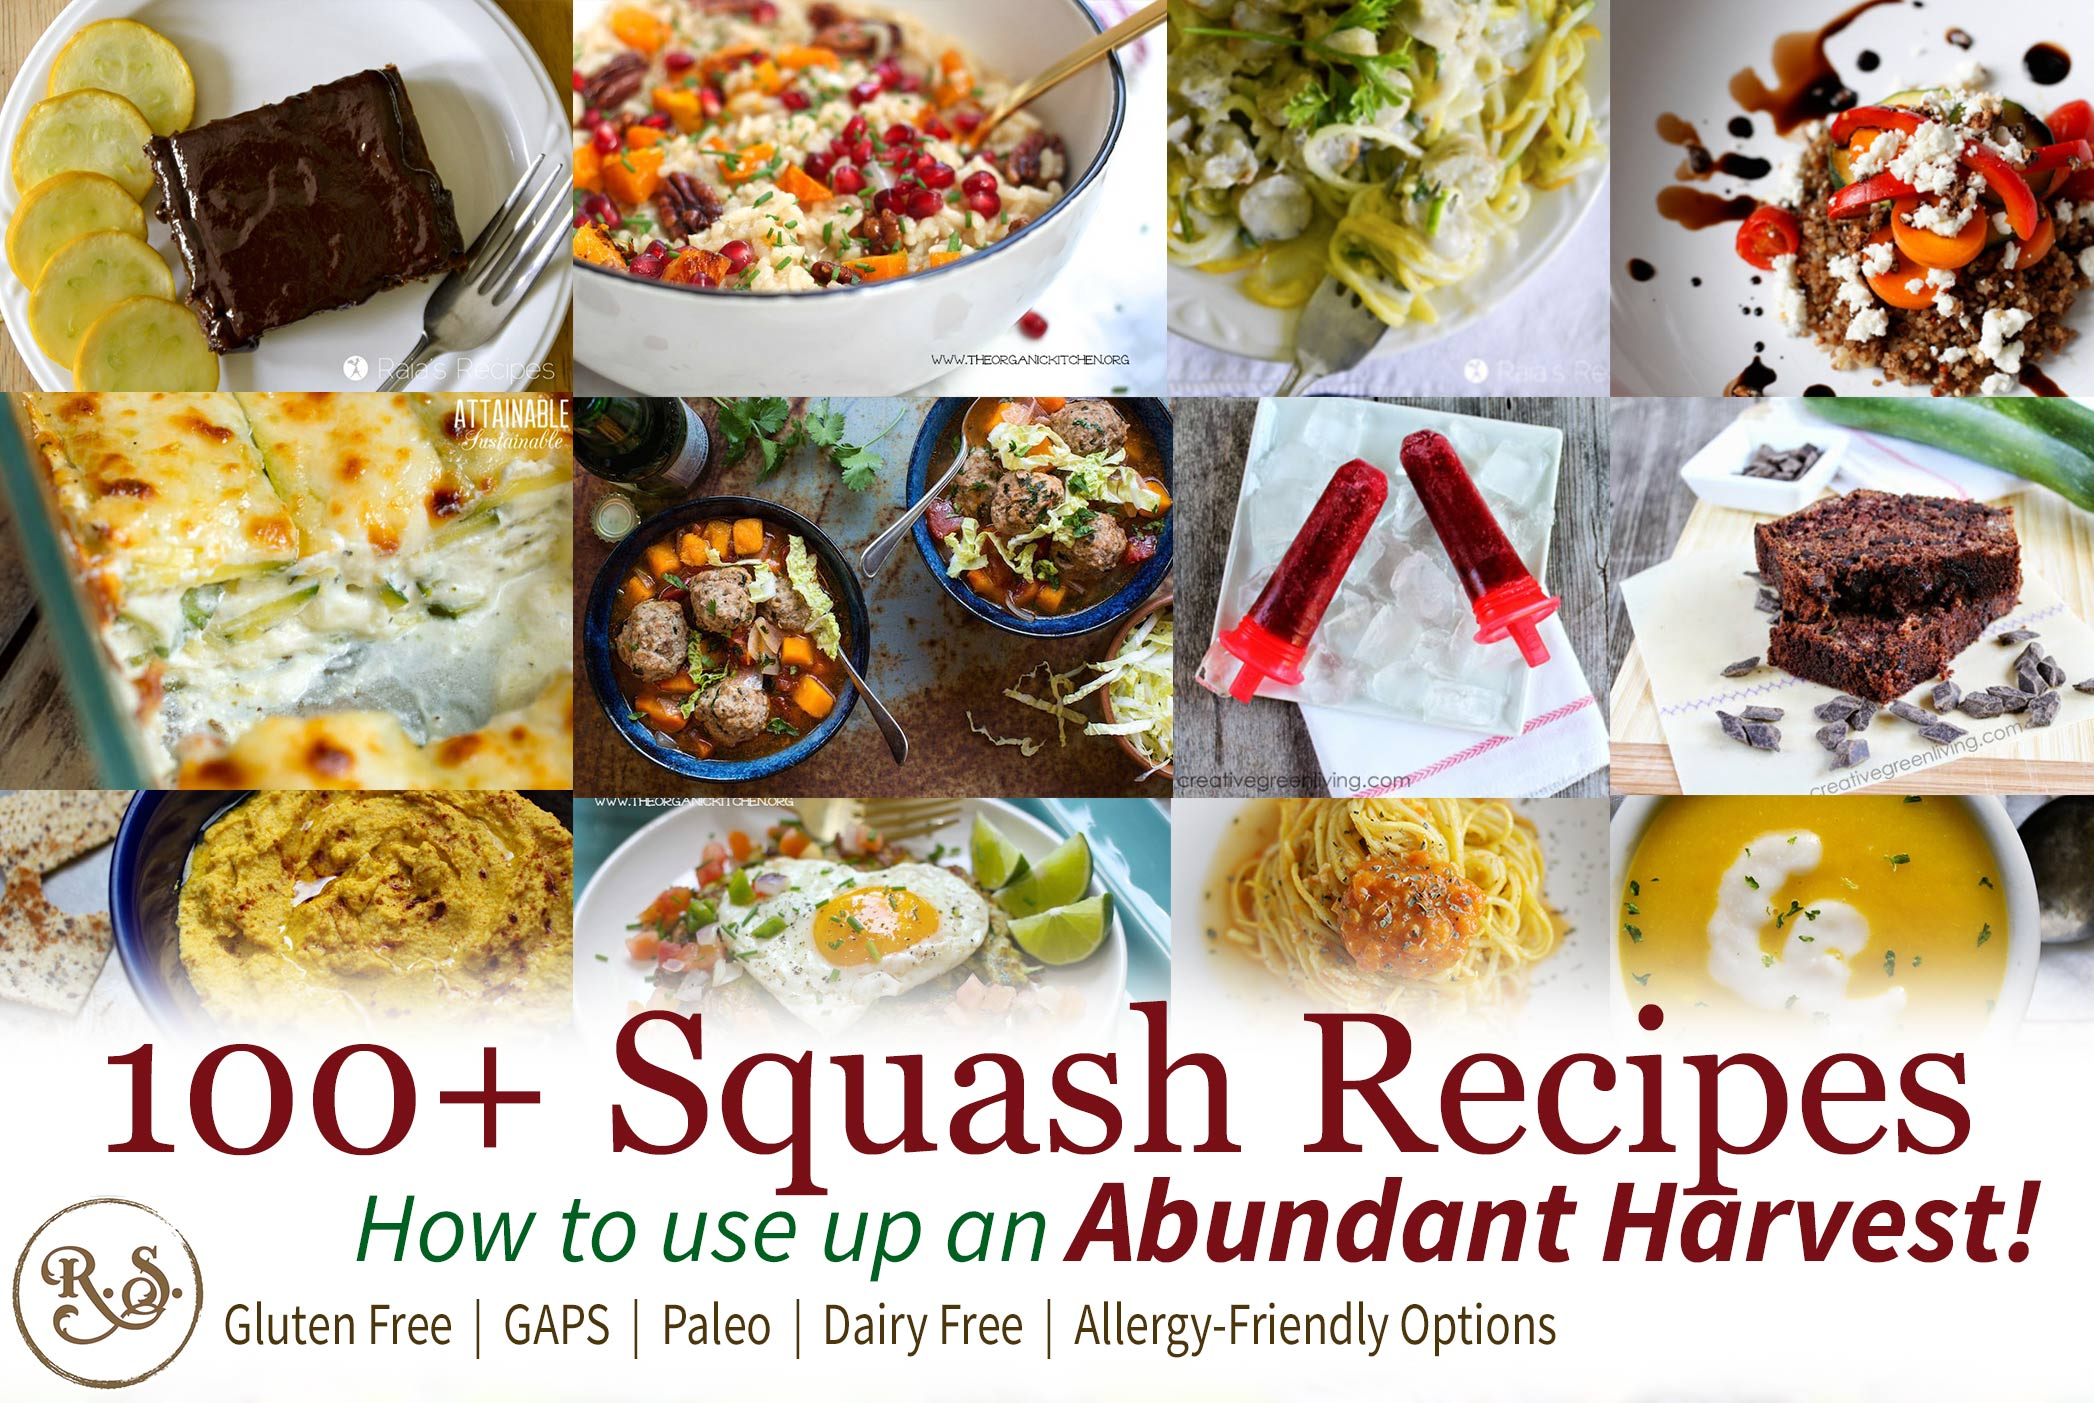 Find 100+ squash recipes to use up an abundant squash harvest from your garden. When squash is in season you can't have too many recipes. Find the right easy squash recipe for you.